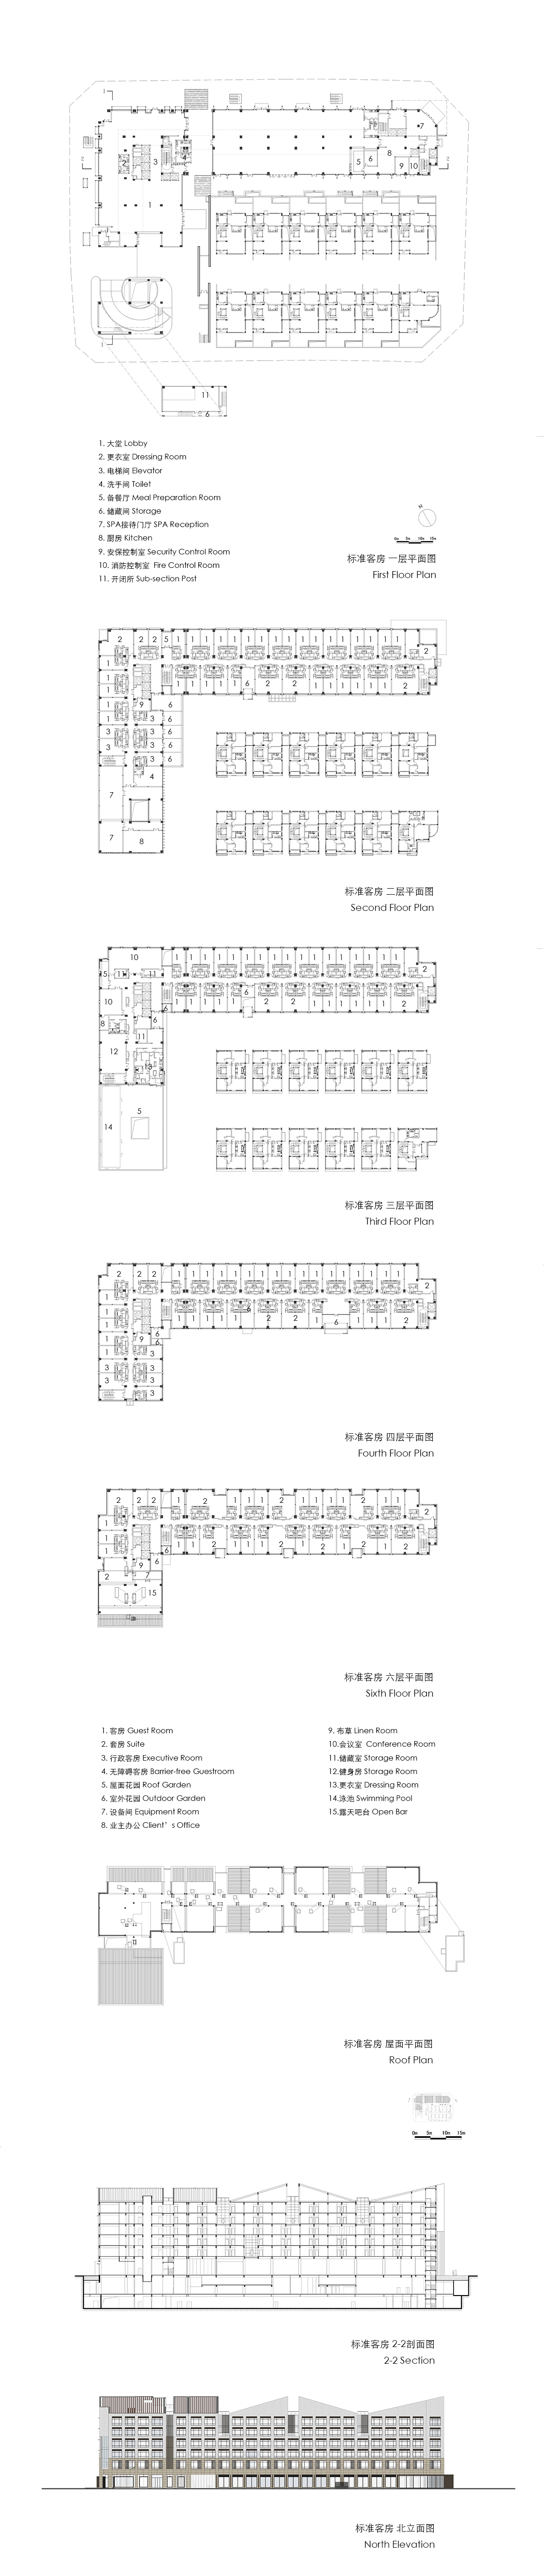 21 - 平立剖 Plan Elevation Section.jpg